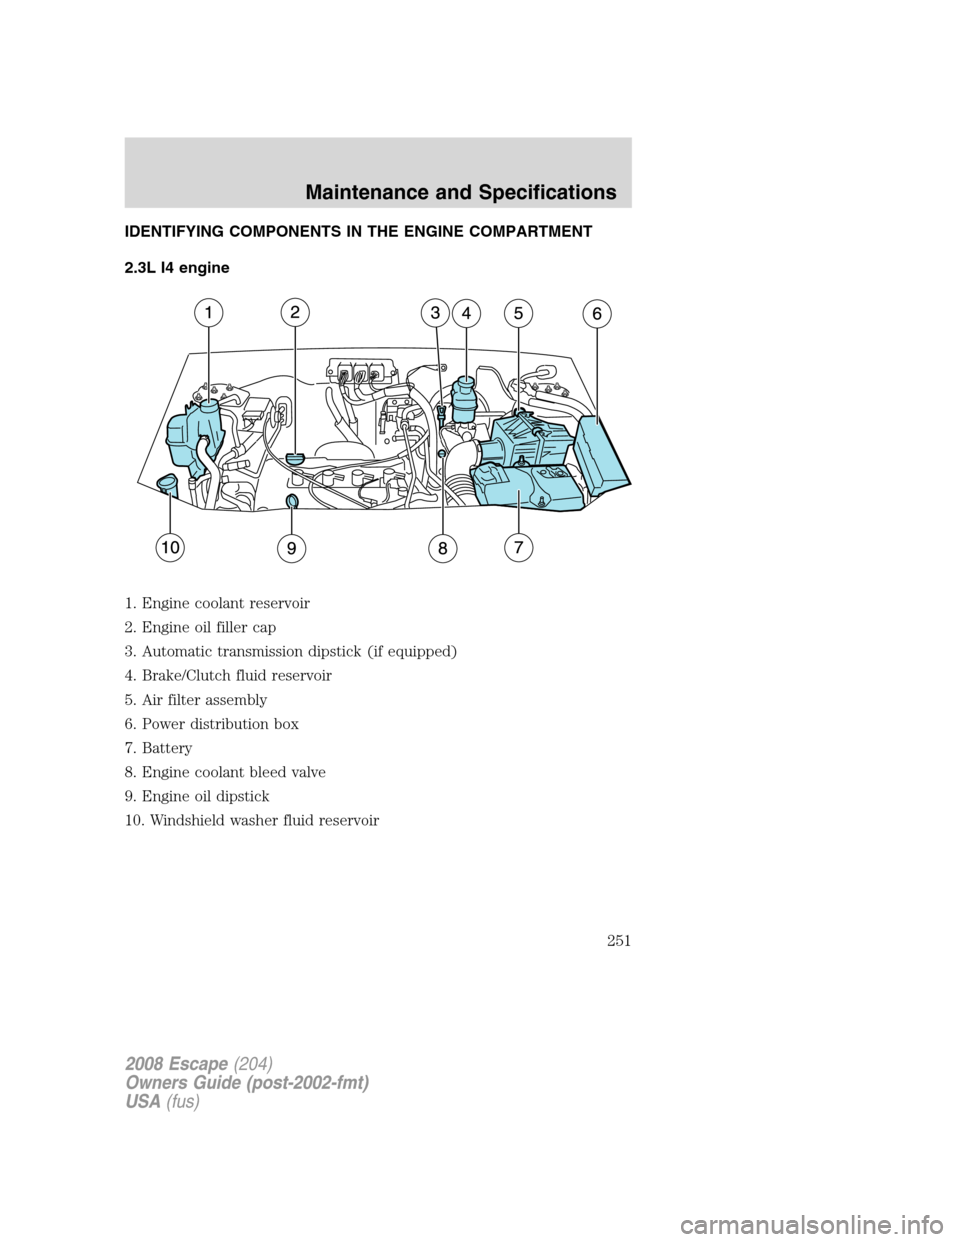 FORD ESCAPE 2008 2.G Owners Manual, Page 251